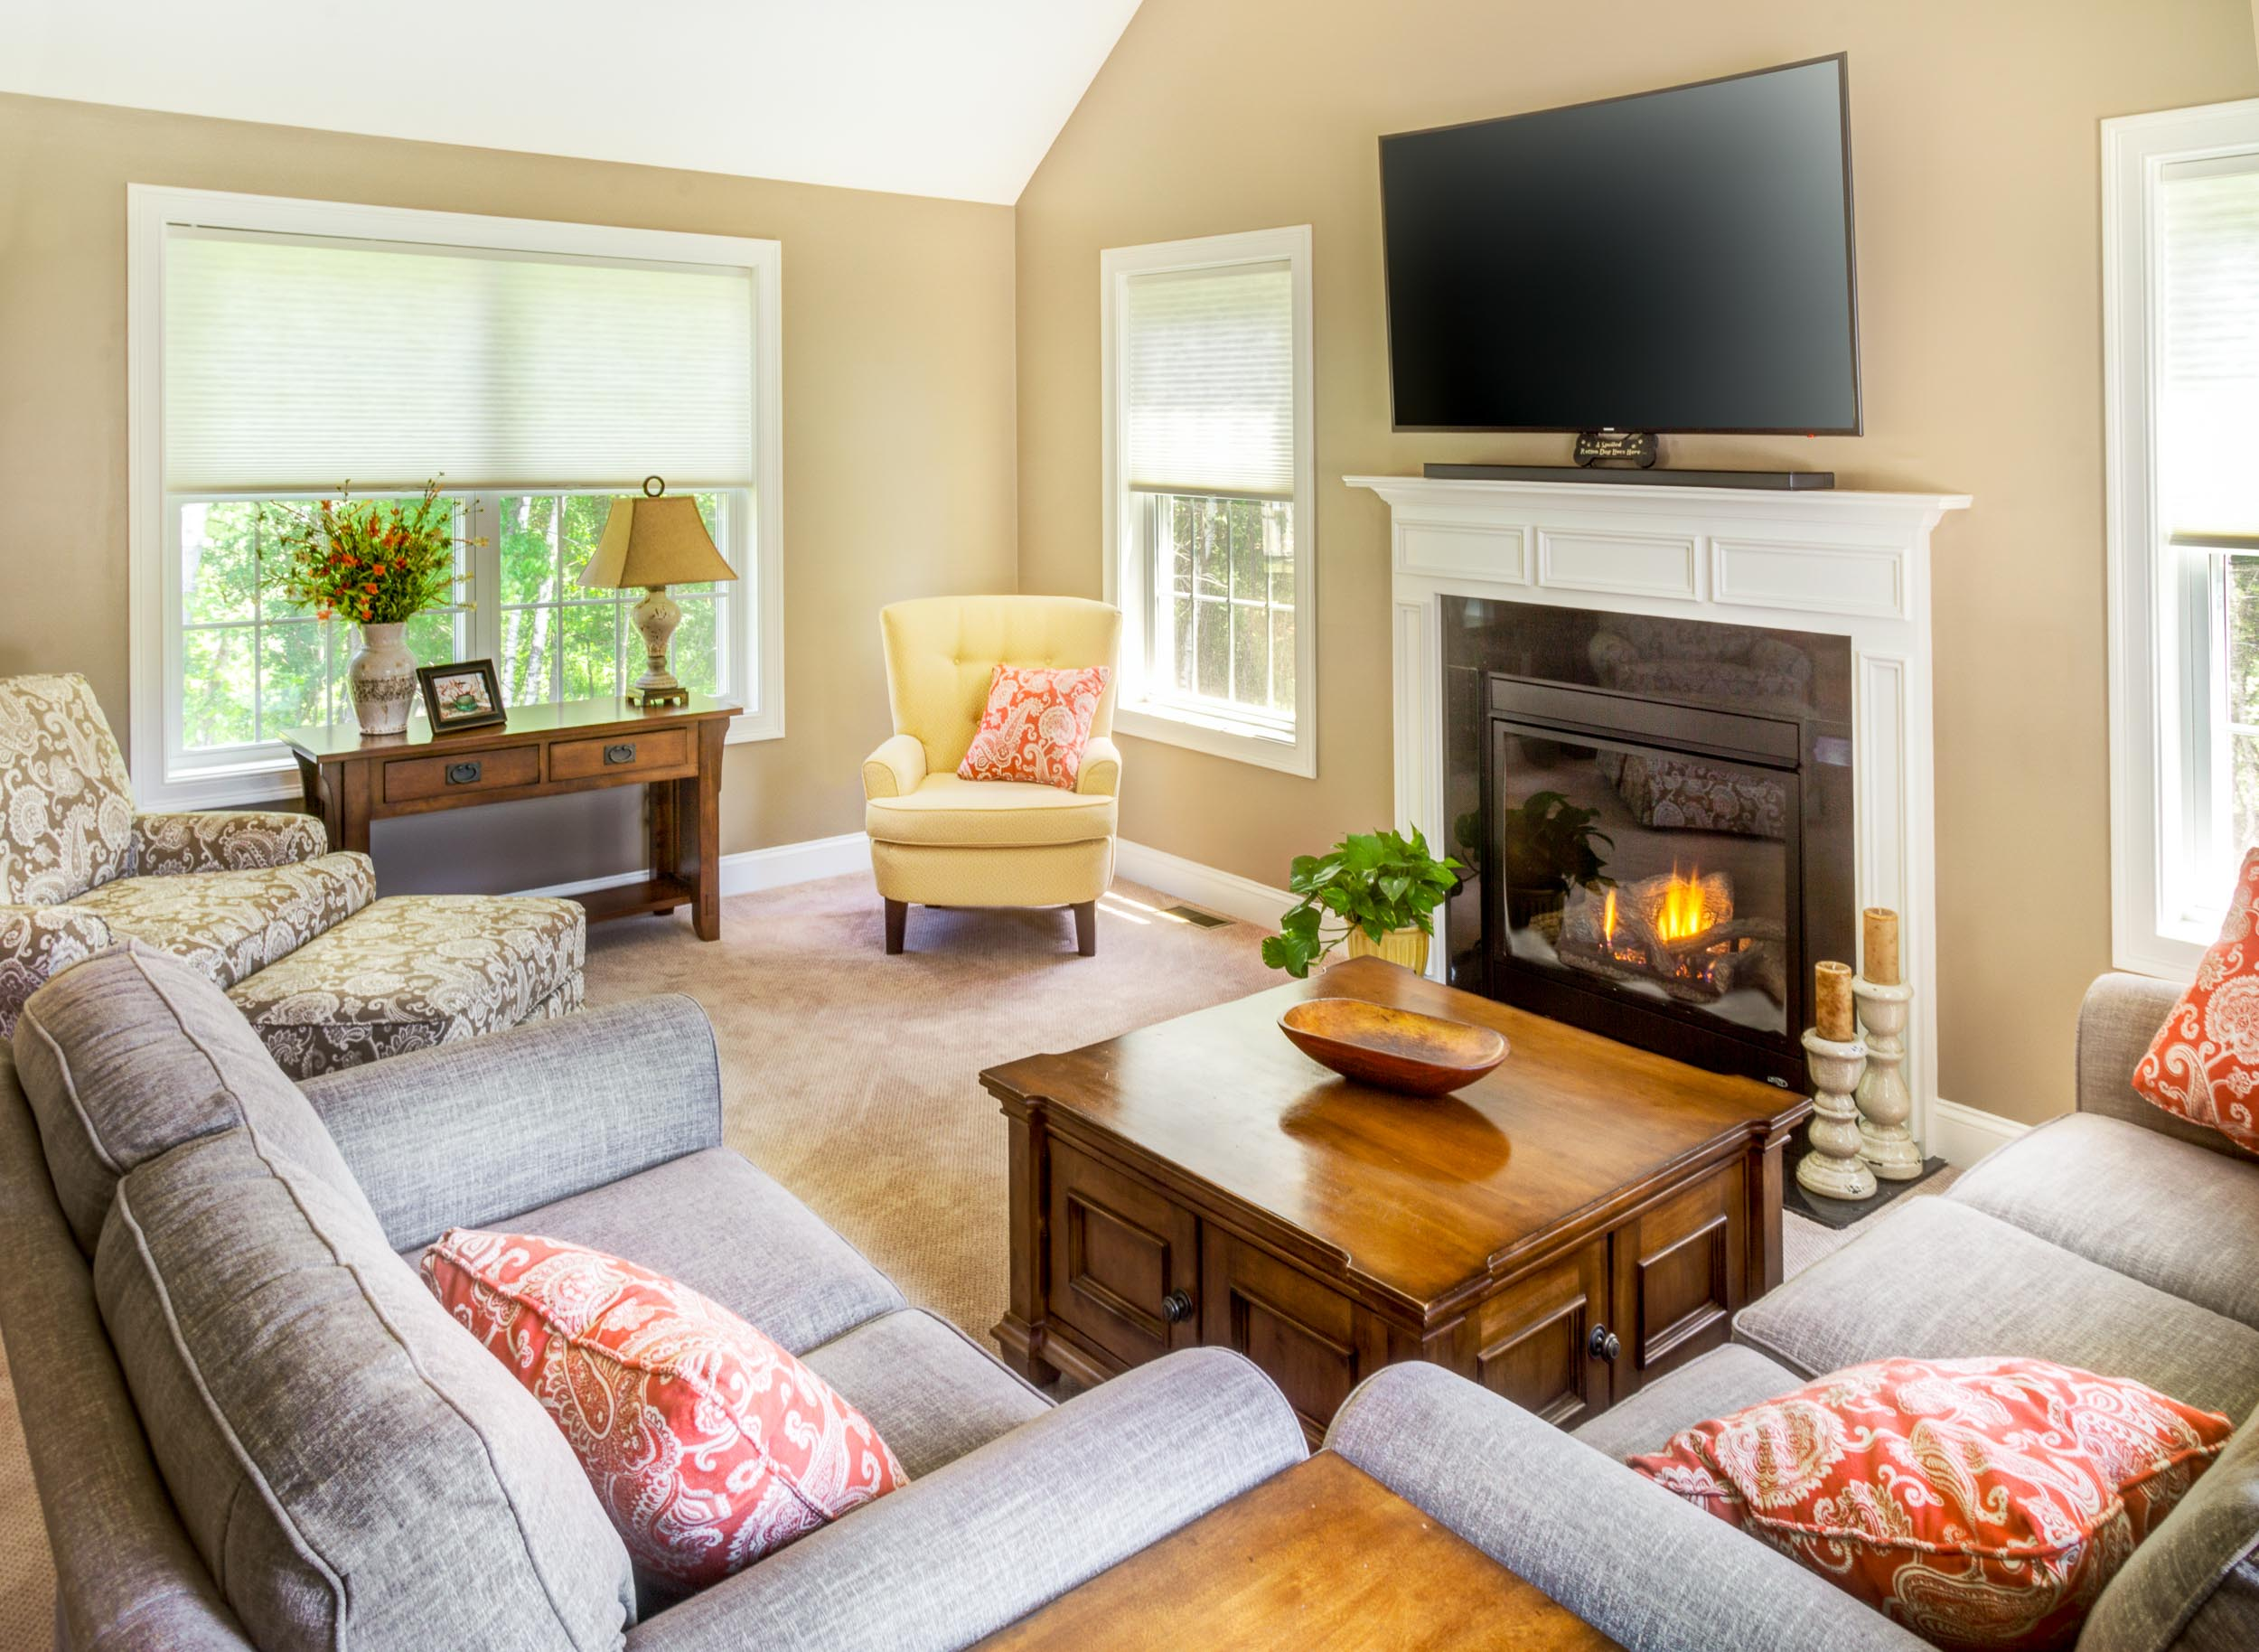 The family room wall color is Alexandria Beige. The sofa is skirted and the love seat is a sock arm style.